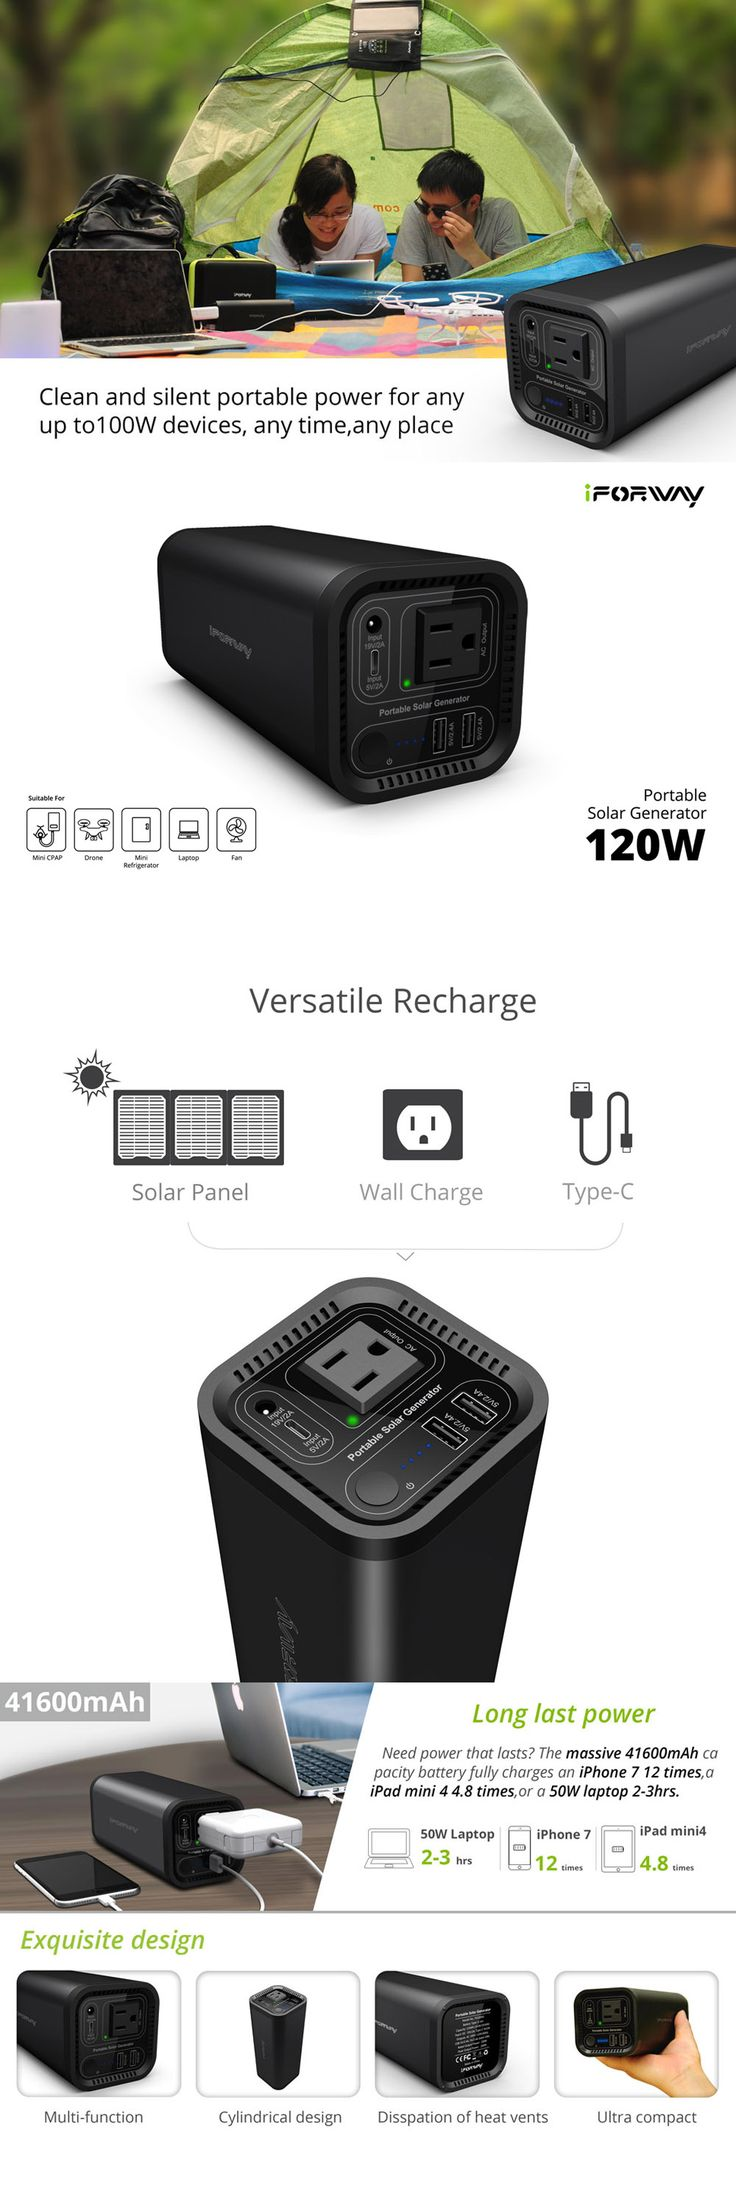 20 Best Top 10 Solar Generators Images On Pinterest Cheap Rv Livingcom Basic 12 Volt Wiring How To Install A Led Light Power Bank With 41600mah Fully Charge An Iphone7 Times Ipad Mini4 48